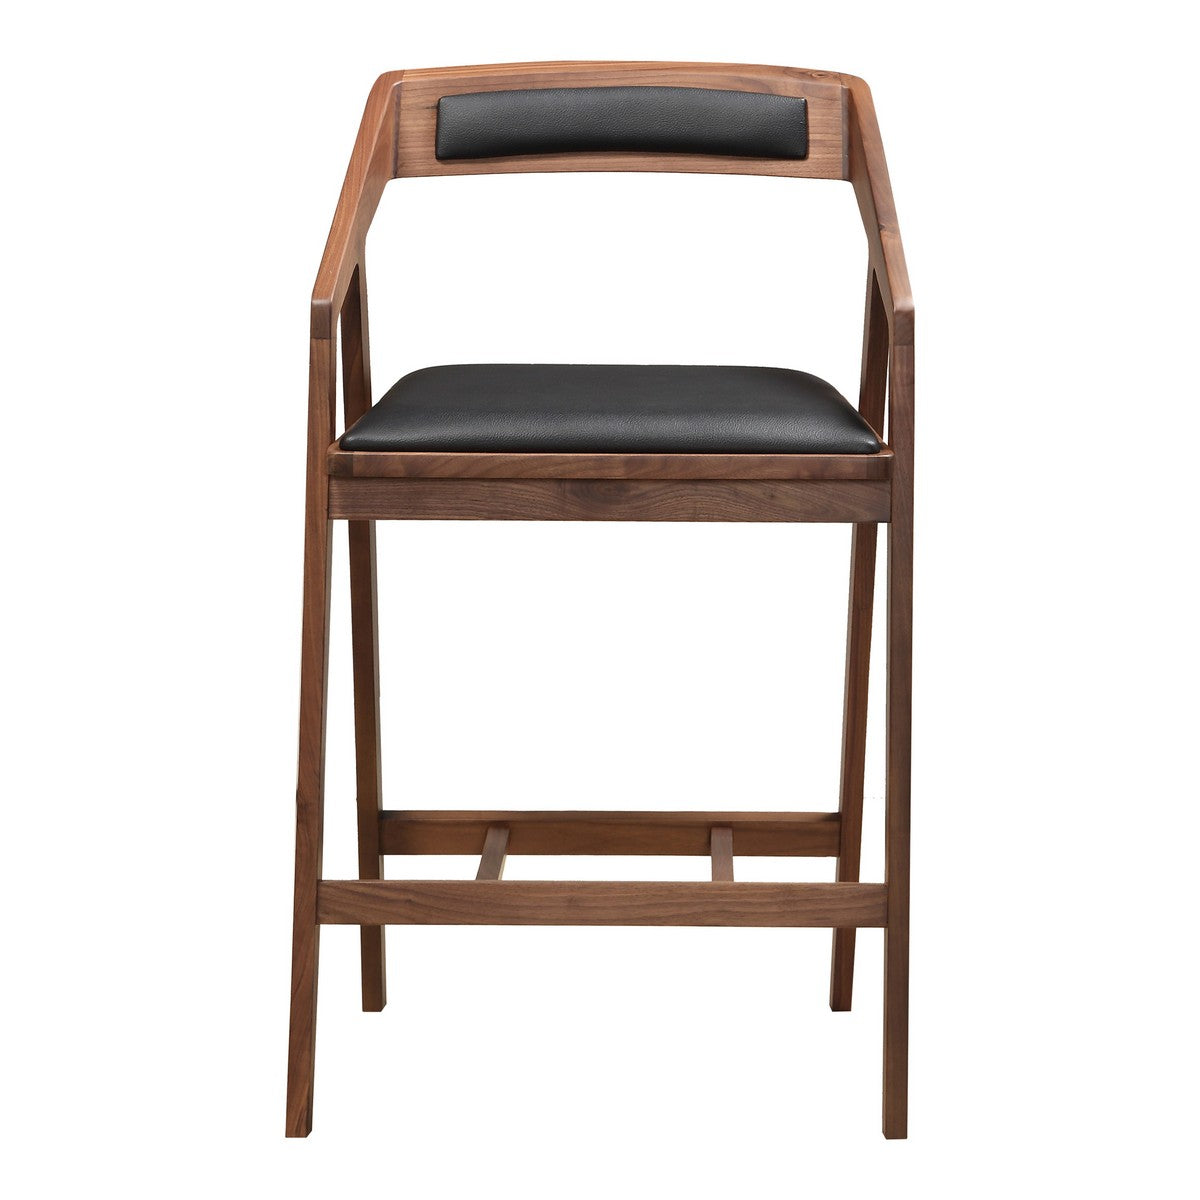 Moe's Home Collection Padma Counter Stool Black - CB-1025-03 - Moe's Home Collection - Counter Stools - Minimal And Modern - 1